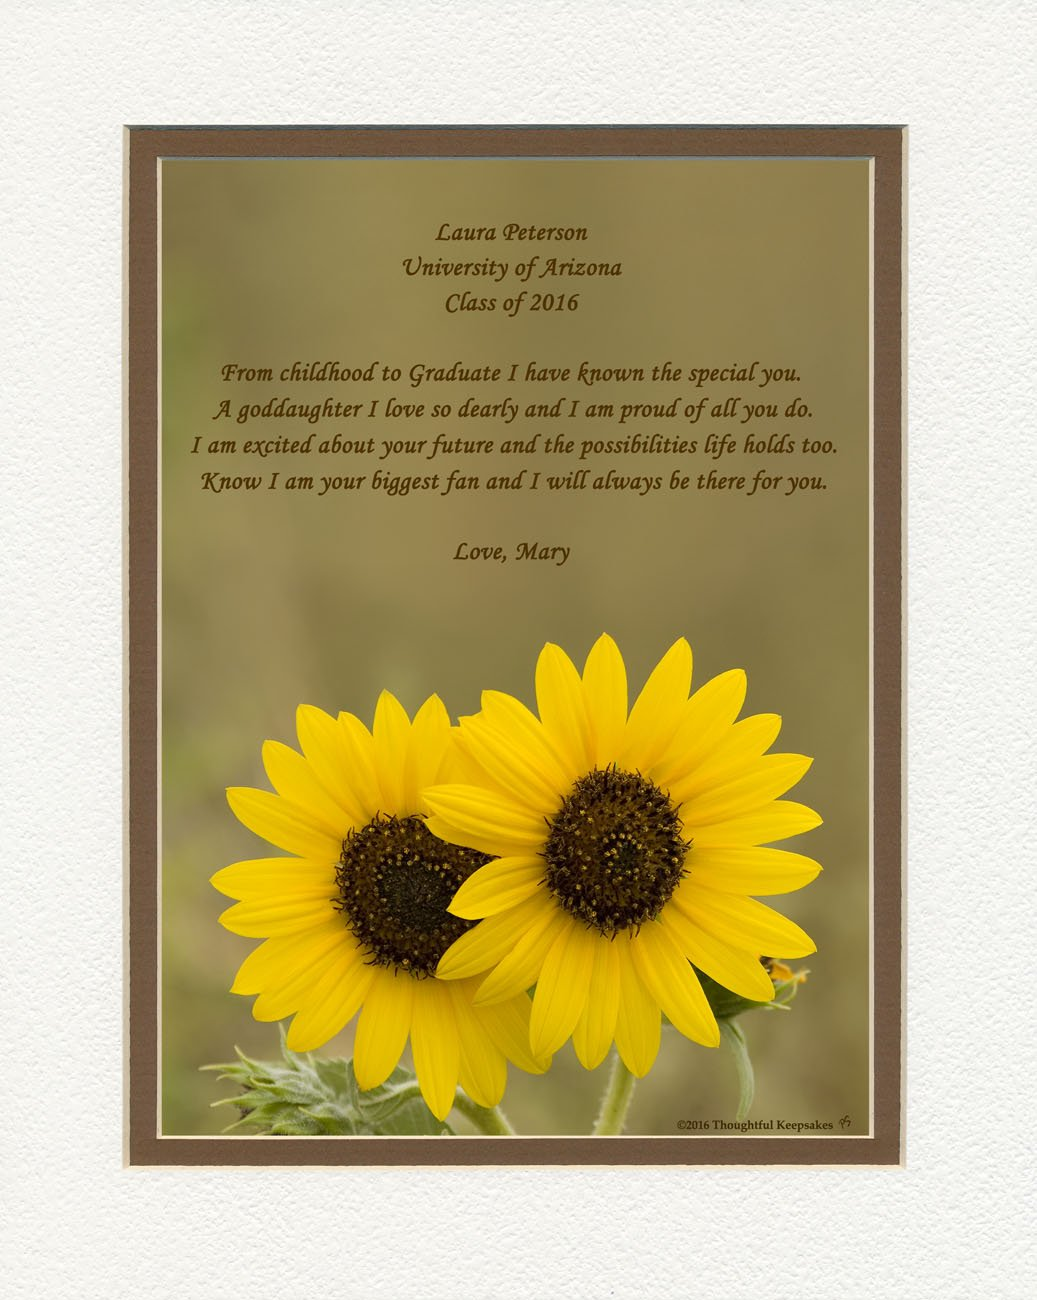 Personalized Goddaughter Graduation Gift with ''From Childhood to Graduate'' Poem, Sunflowers Photo, 8x10 Double Matted. Special Keepsake Graduation Gifts for Goddaughter